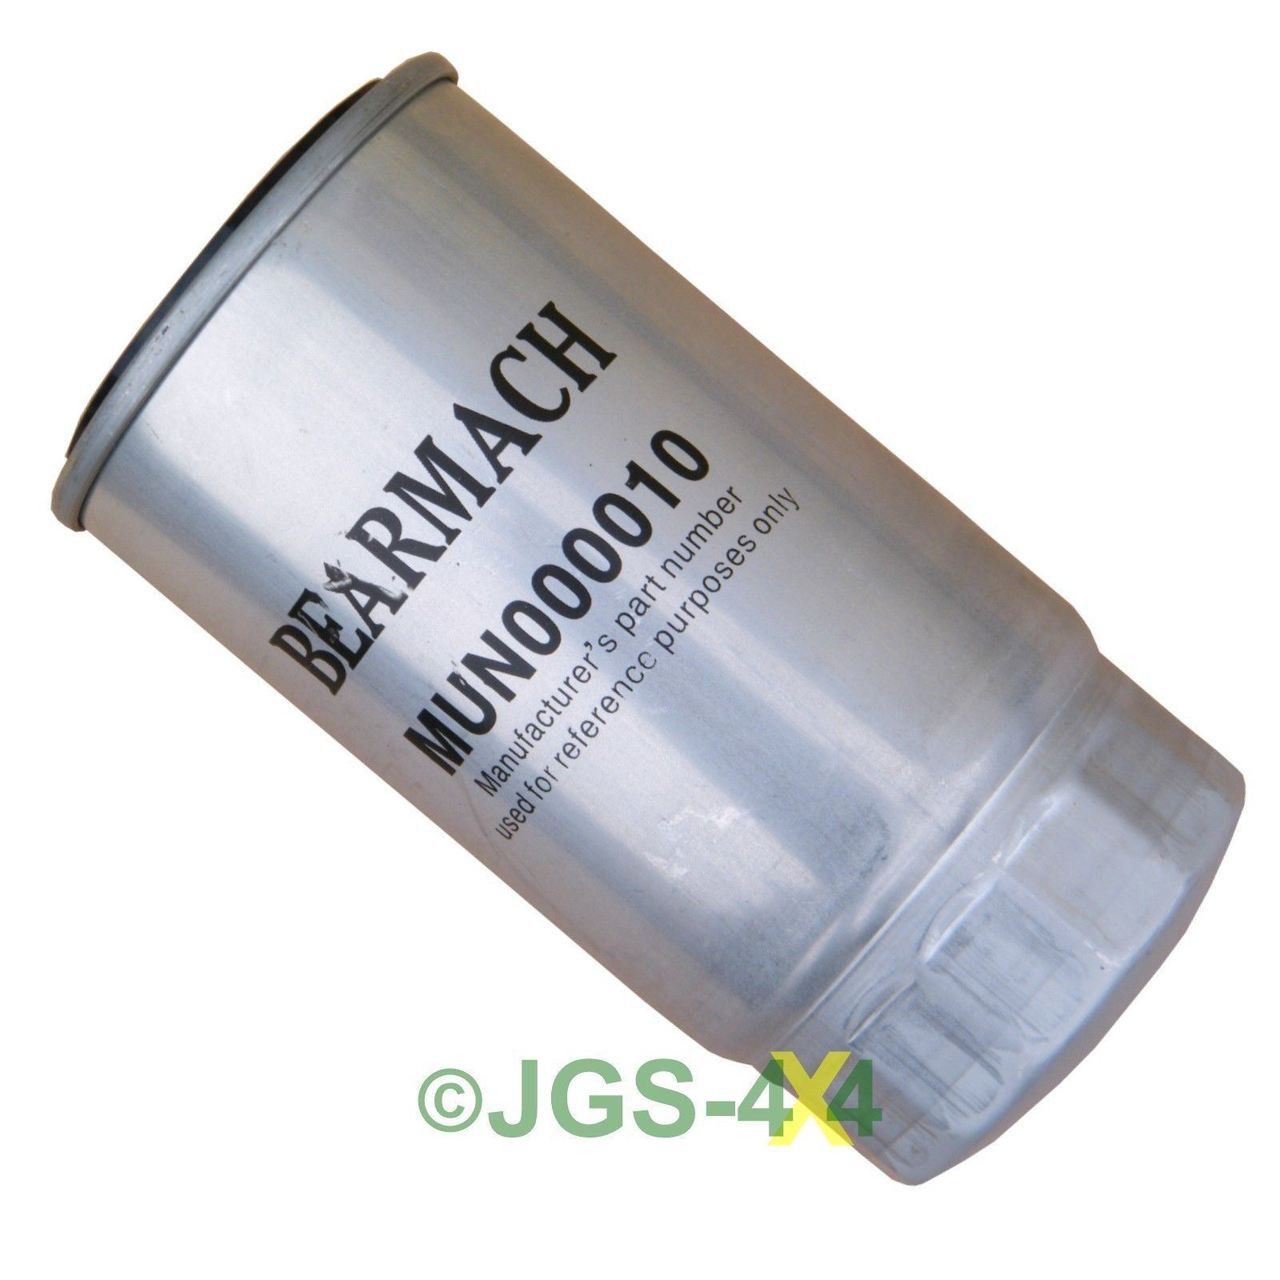 hight resolution of land rover freelander 1 diesel fuel filter 2 0 td4 bmw engine mun000010